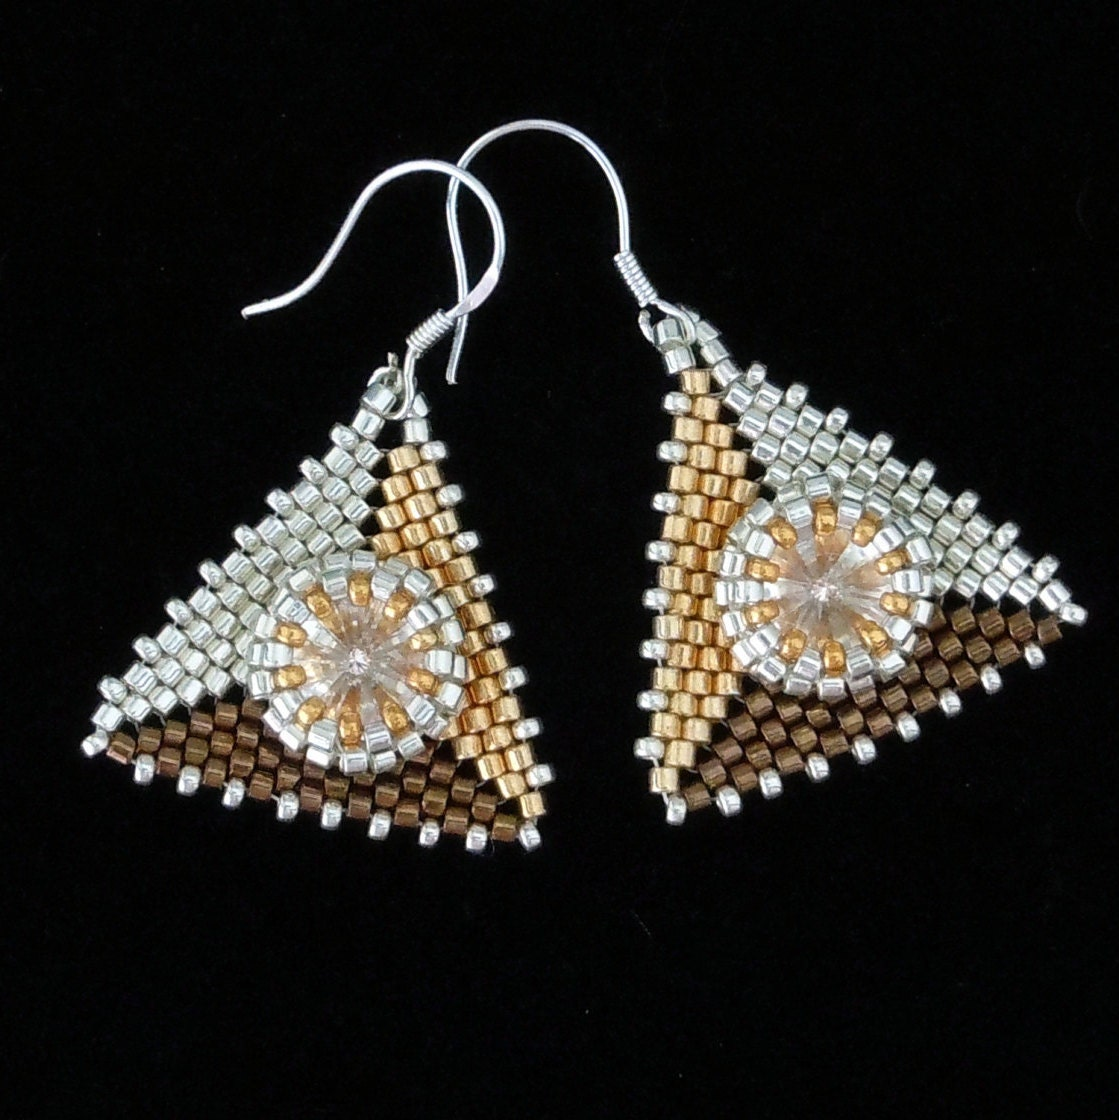 en pierced earrings response of large ayulry the allergy global use market metal item store rakuten pr to beads gold